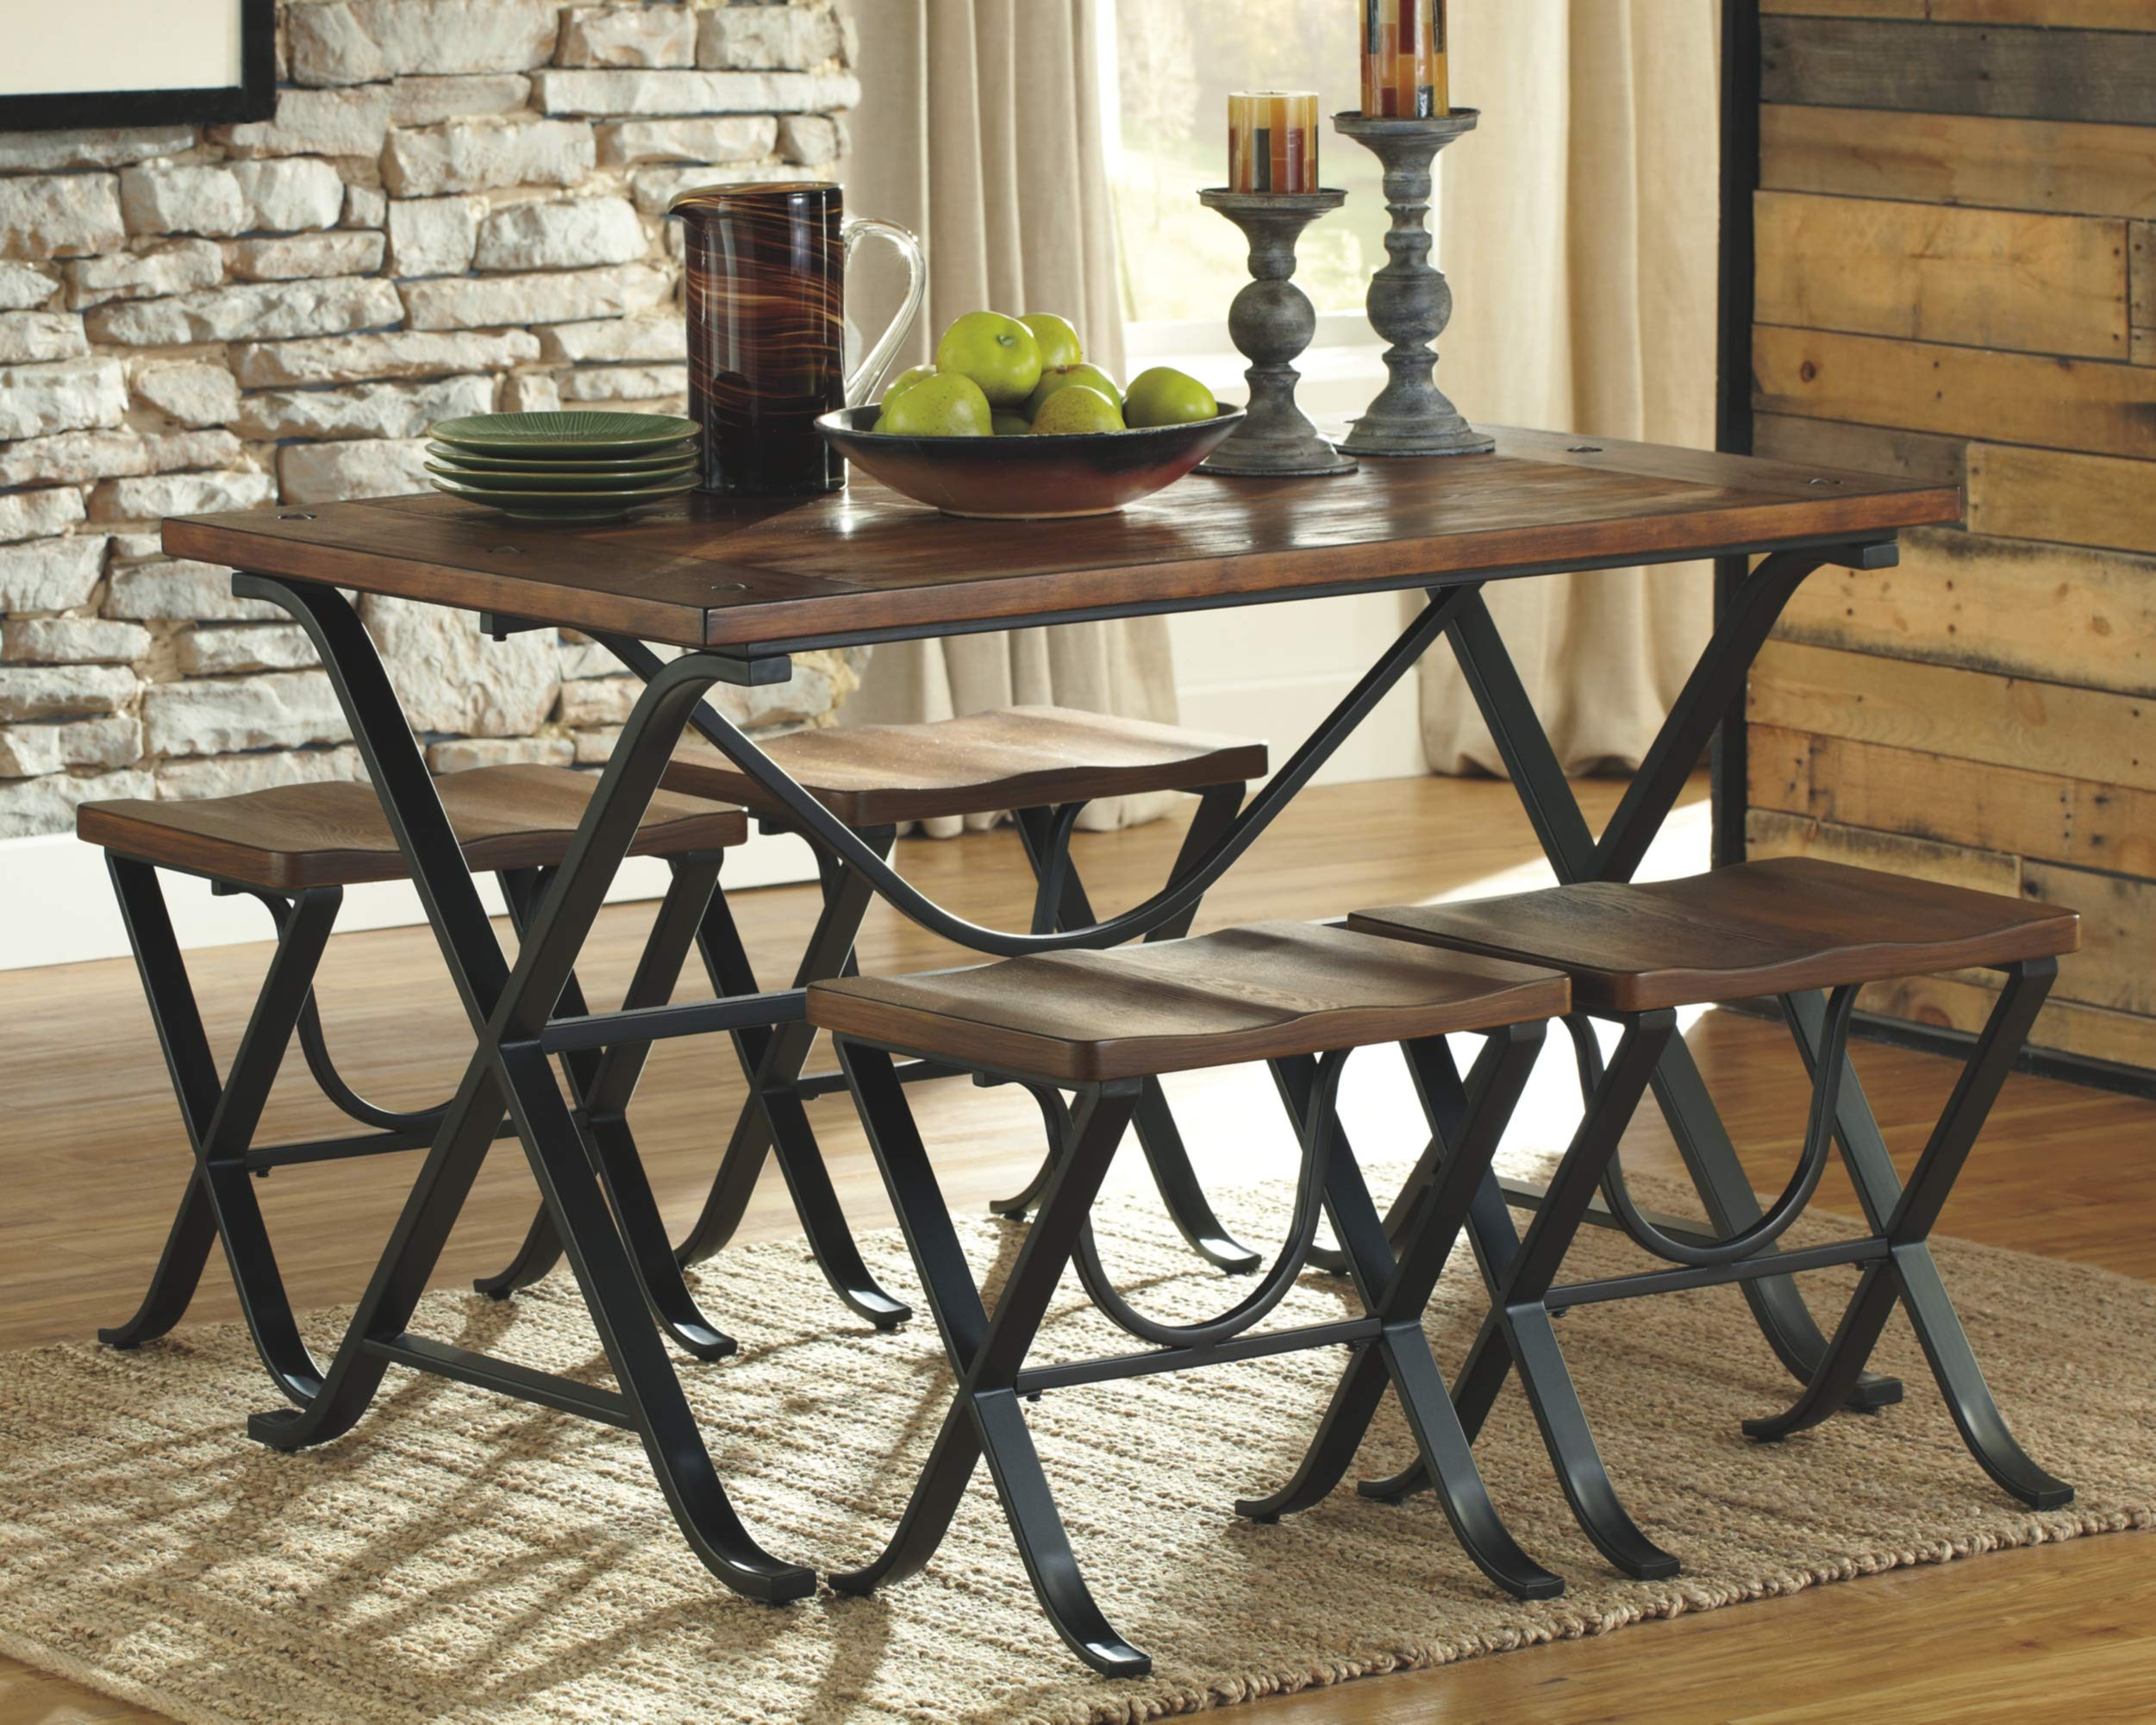 Ashley Furniture Signature Design - Freimore Dining Room Table and Stools - Set of 5 - Medium Brown Wood Top and Black Metal Legs by Signature Design by Ashley (Image #2)